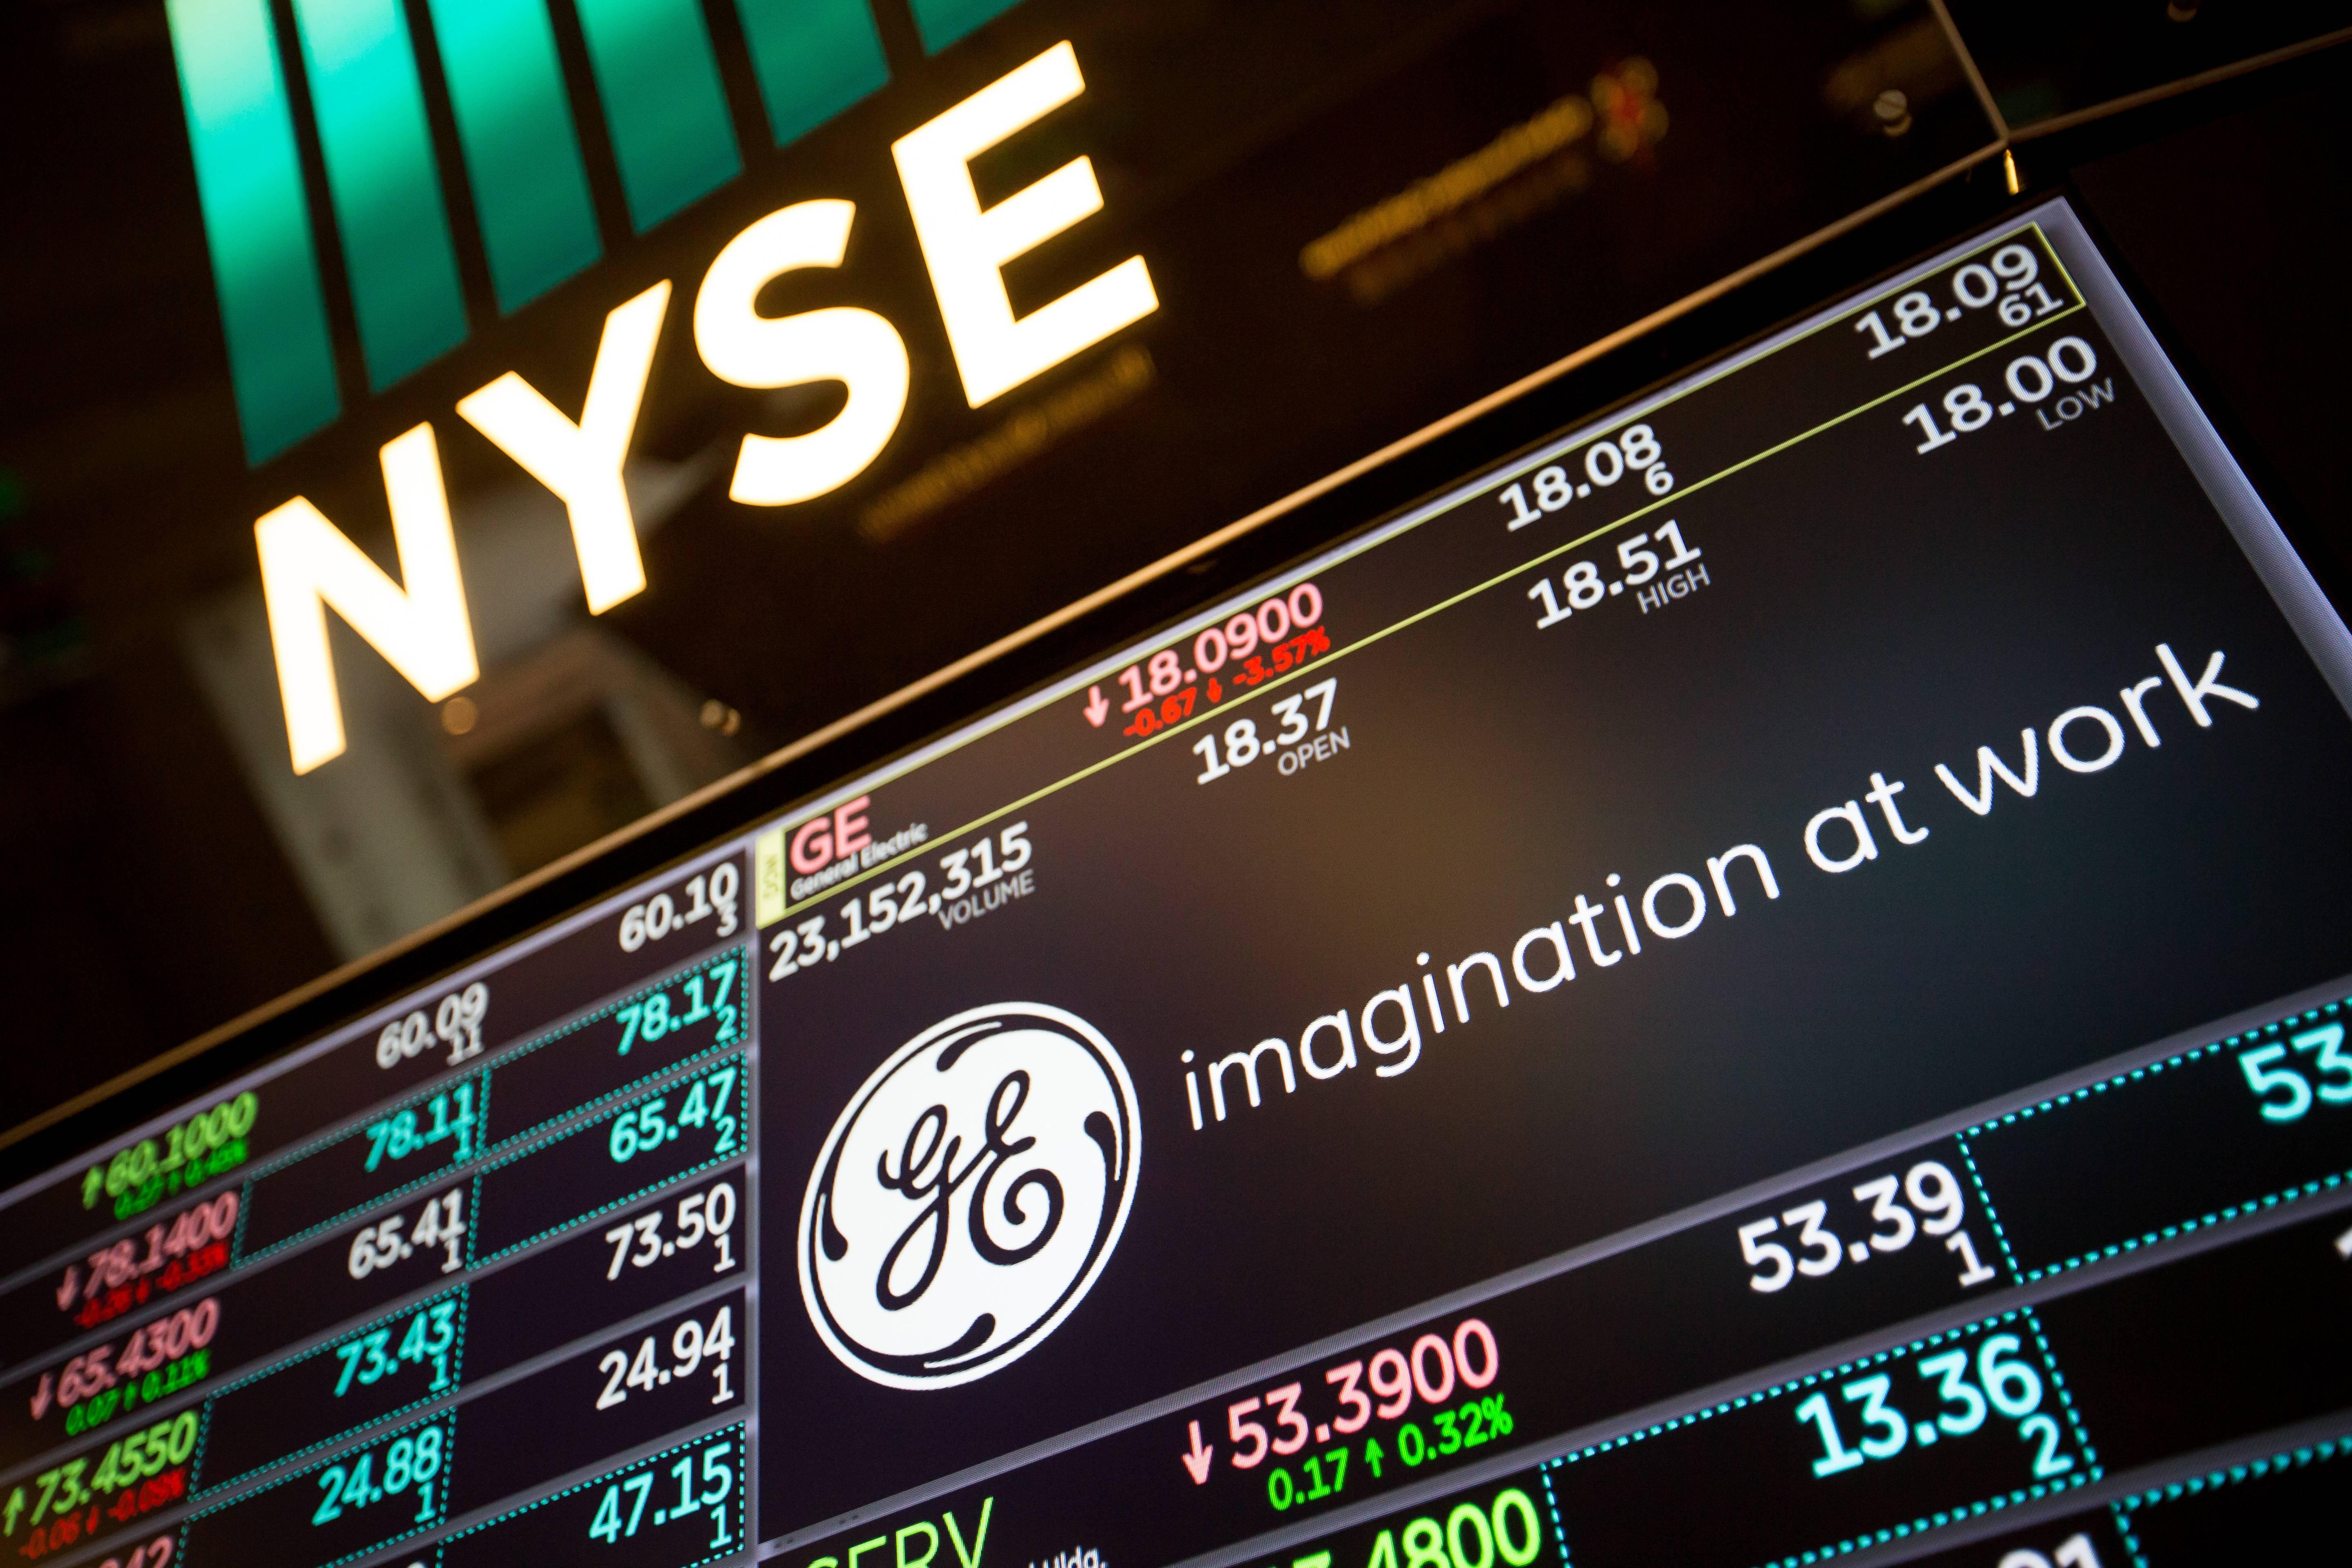 With GE Booted, These 30 Companies Will Soon Form the Dow Jones Industrial Average